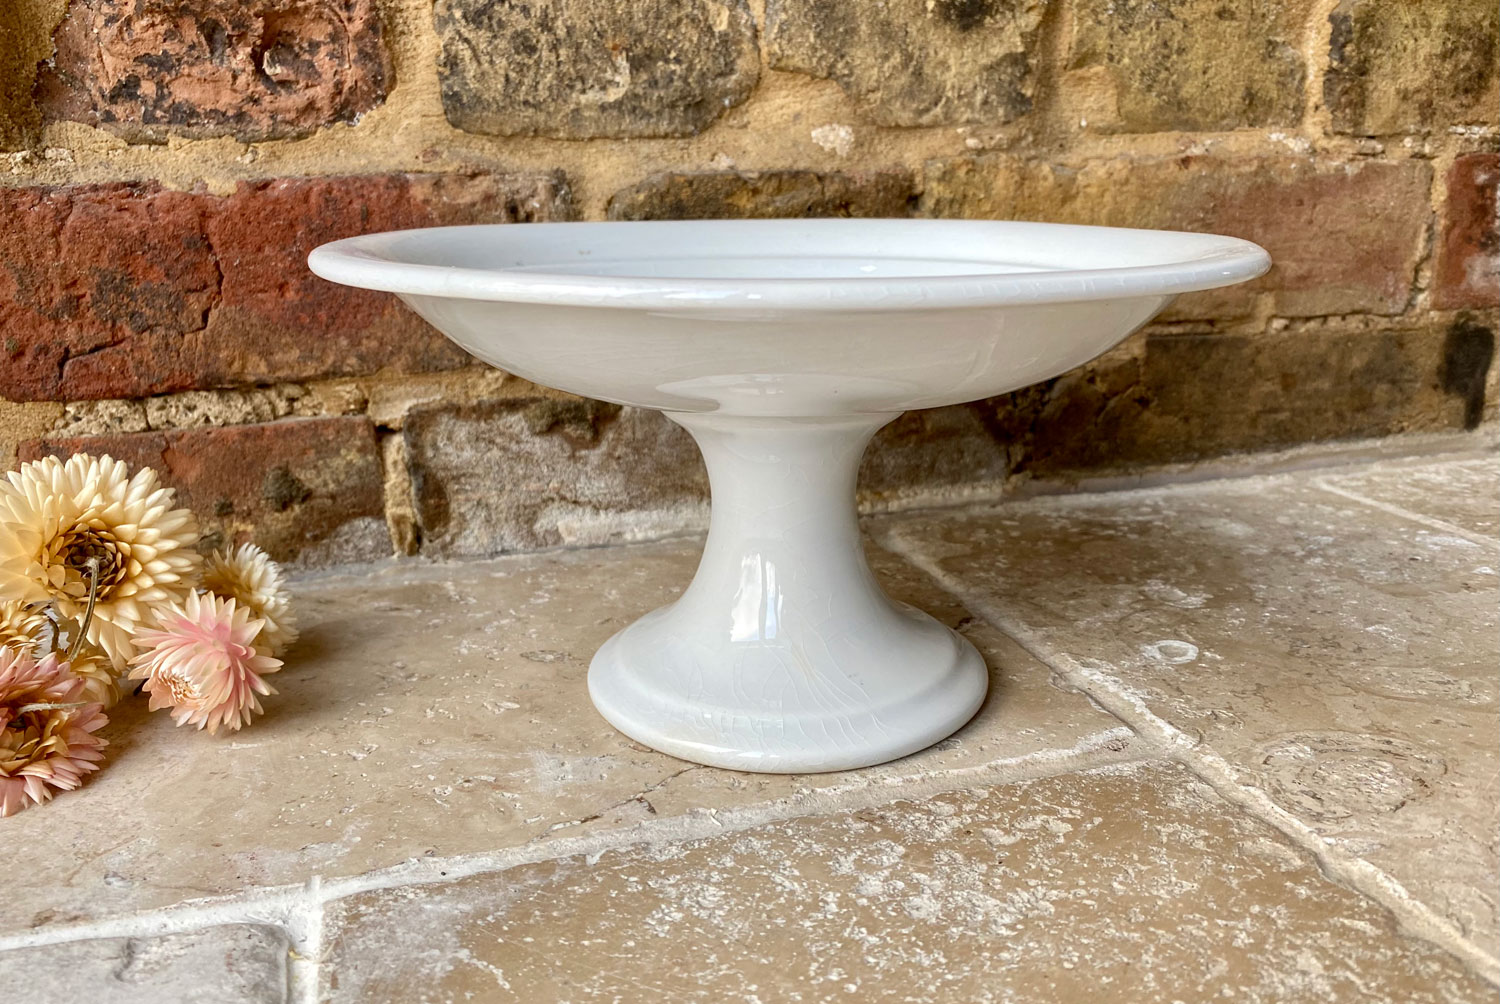 antique early 20th century white ironstone compote dish plain whiteware compotier boch les freres